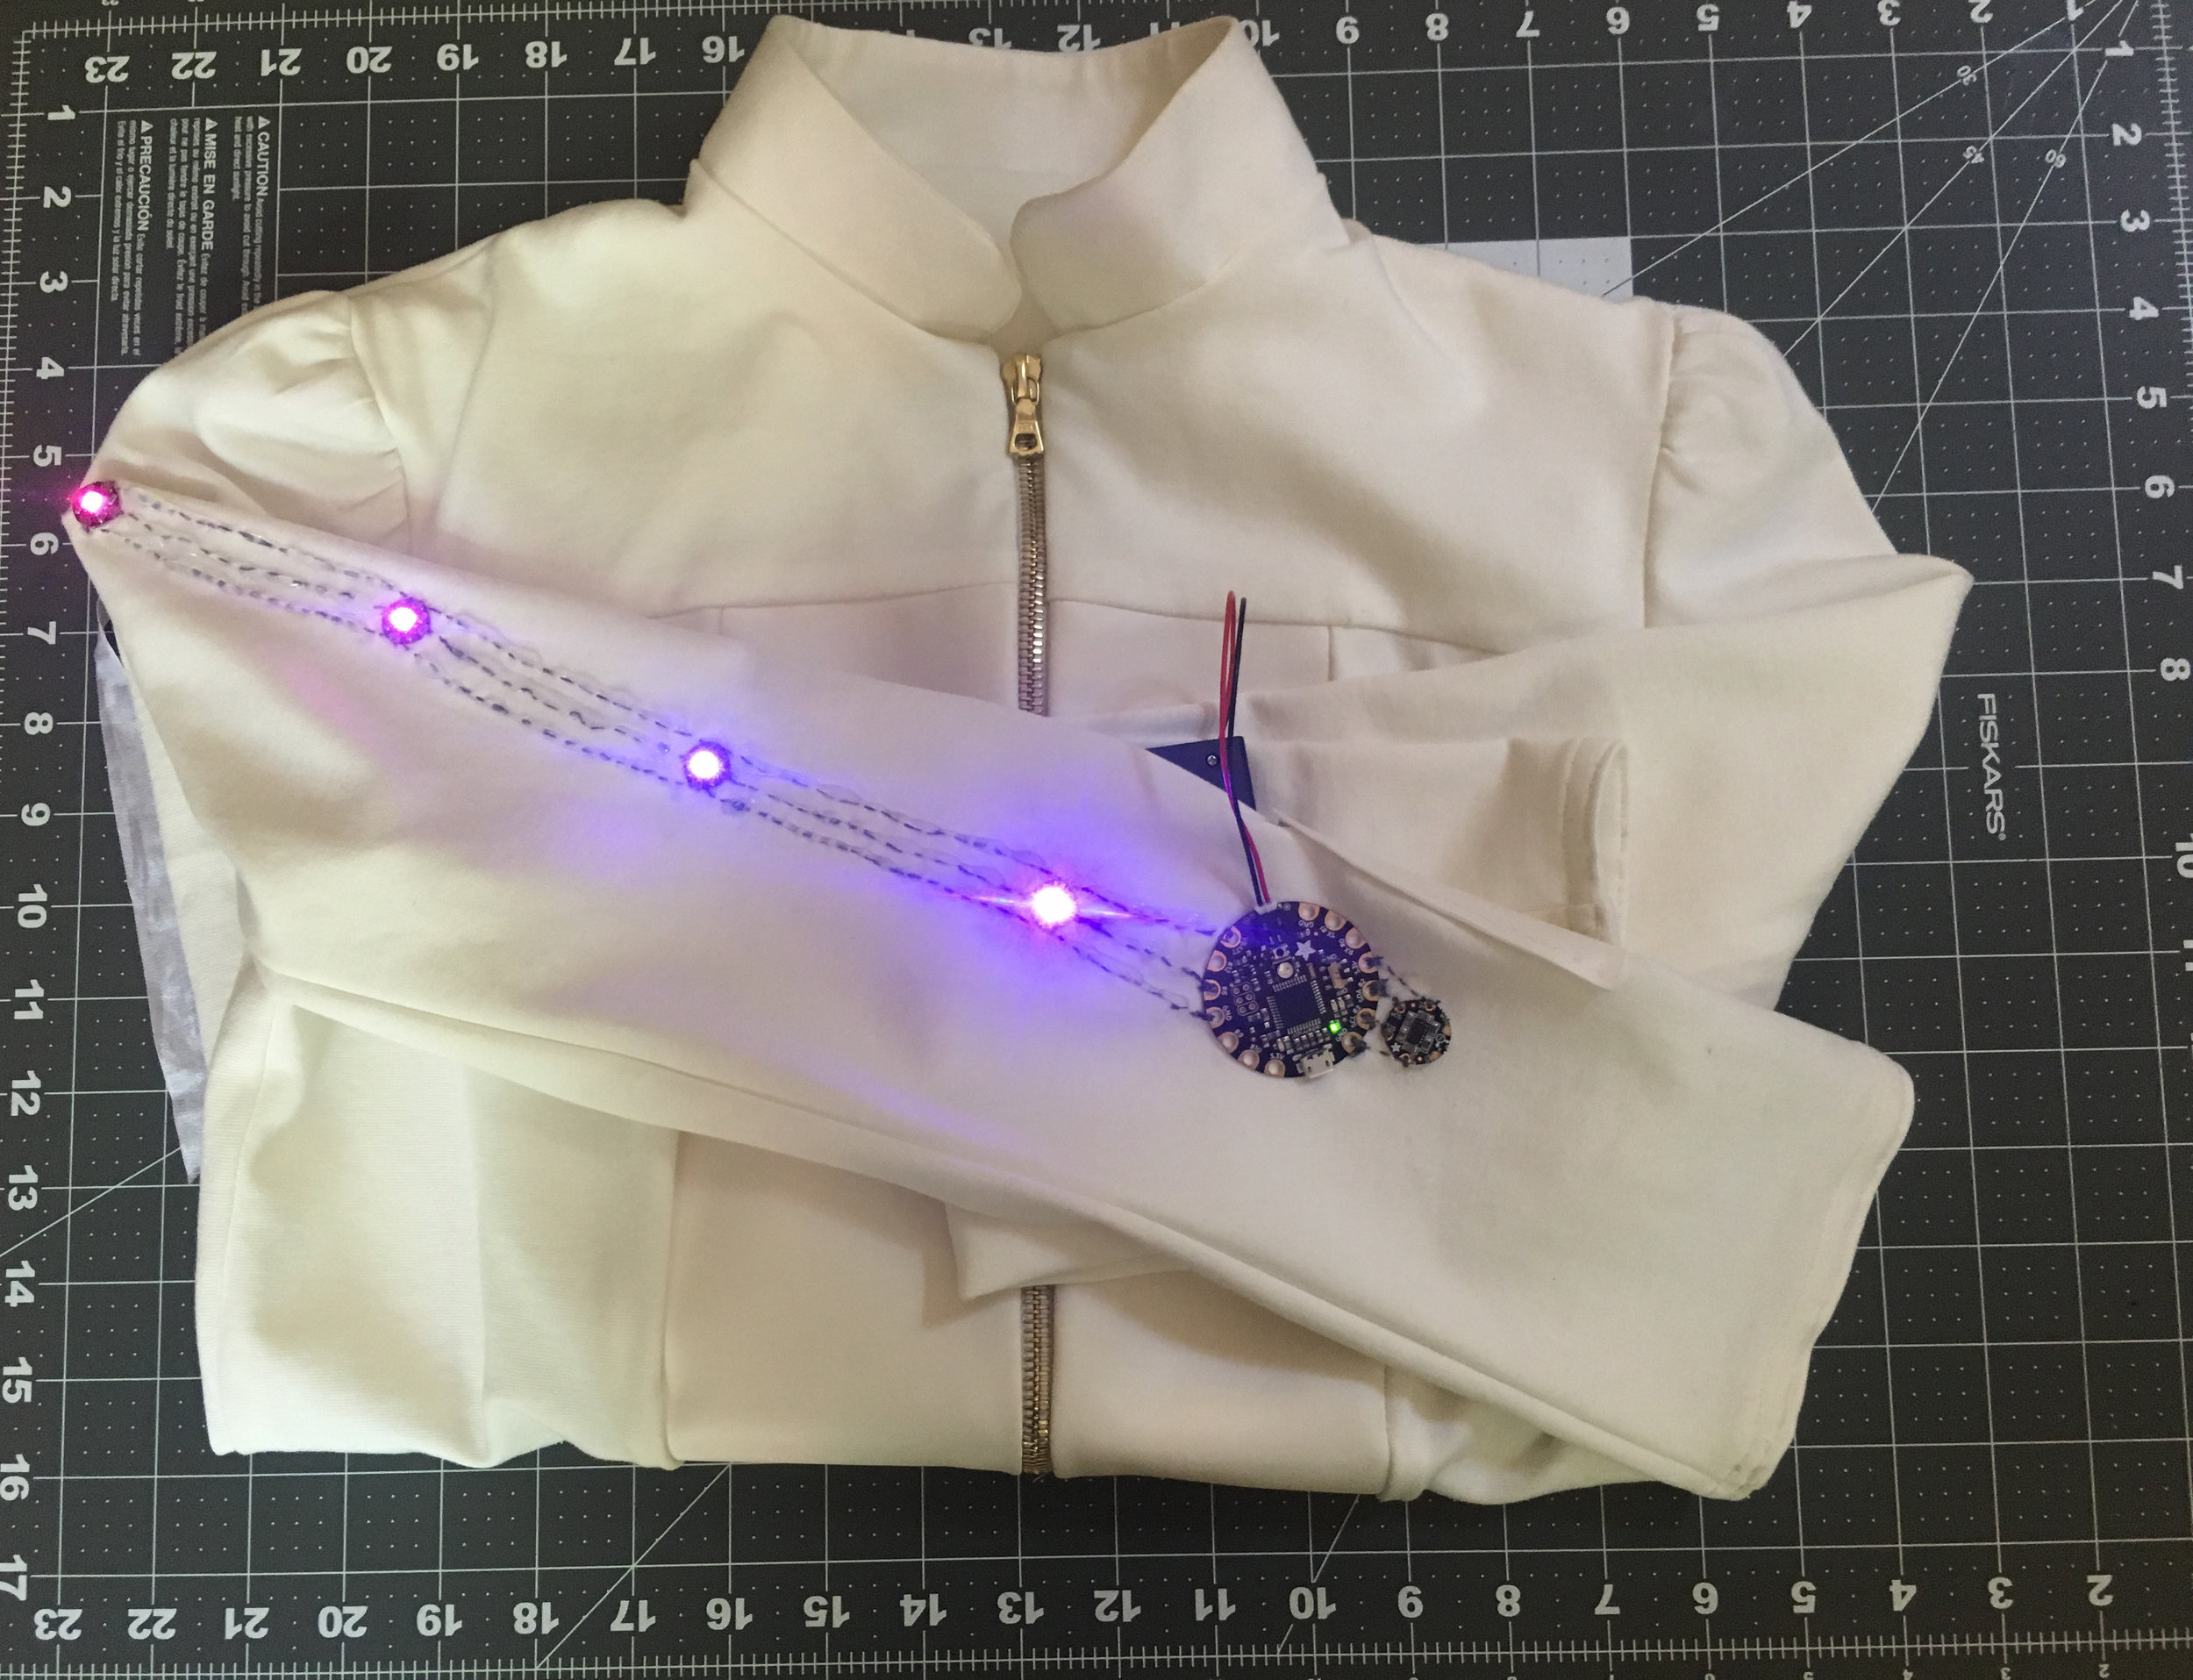 engineering - We use conductive thread to sew our clothes, we use LEDs, circuit boards, accelerometers, heat sensors and more, we hack solar panels, we solder, 3D print and build the parts we need to create wearable technology.